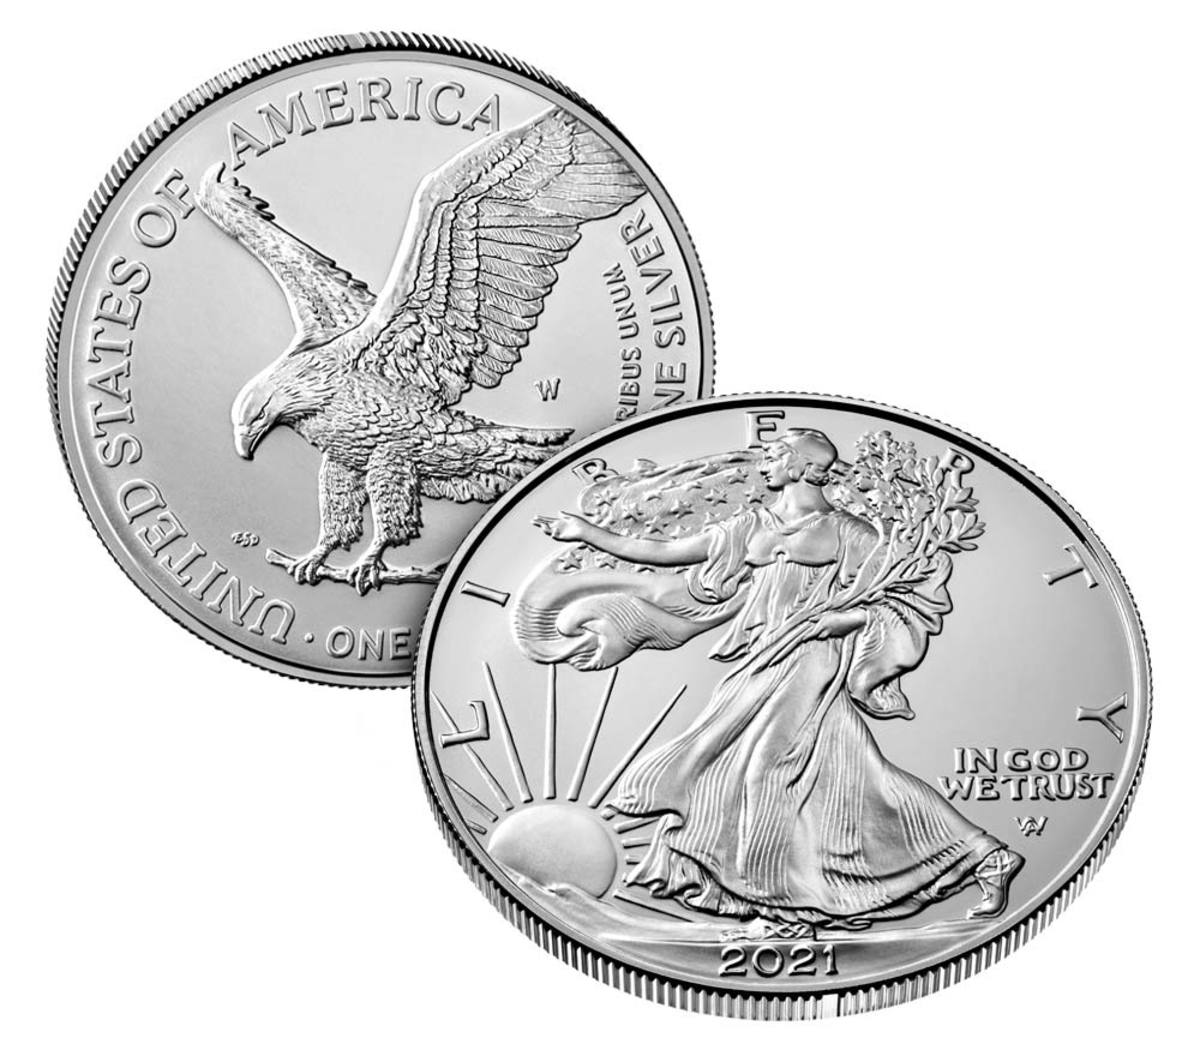 2021-W uncirculated silver Eagle bearing the new design. (Image courtesy United States Mint.)